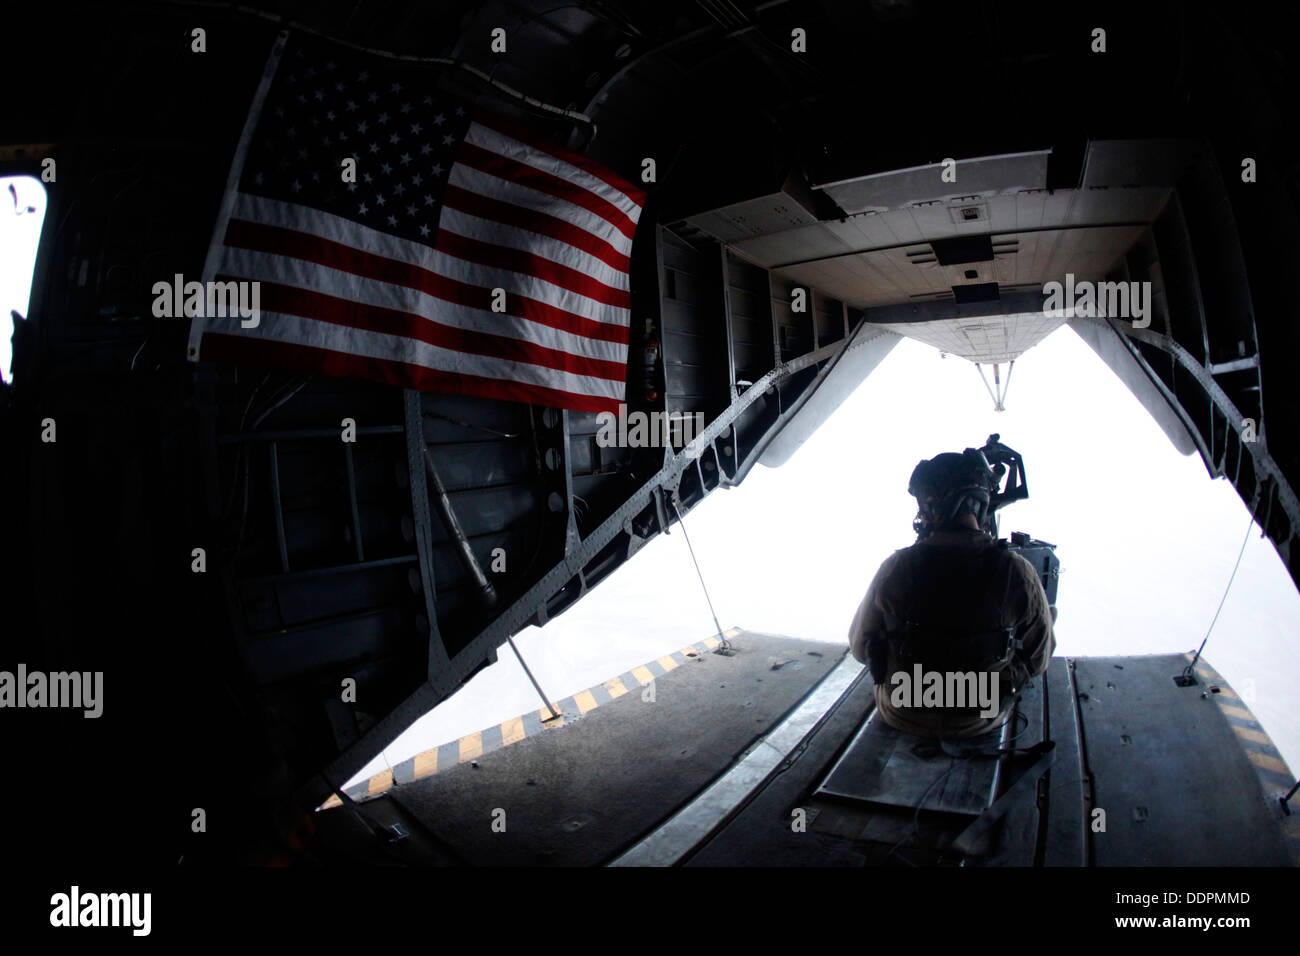 U.S. Marine Corps Cpl. Ryan P. Wells, a crew chief with Marine Heavy Helicopter Squadron 462 (HMH-462), provides aerial security over Helmand province, Afghanistan, Aug. 31, 2013. HMH-462 transported Marines with Golf Company, 2nd Battalion, 8th Marines, Stock Photo